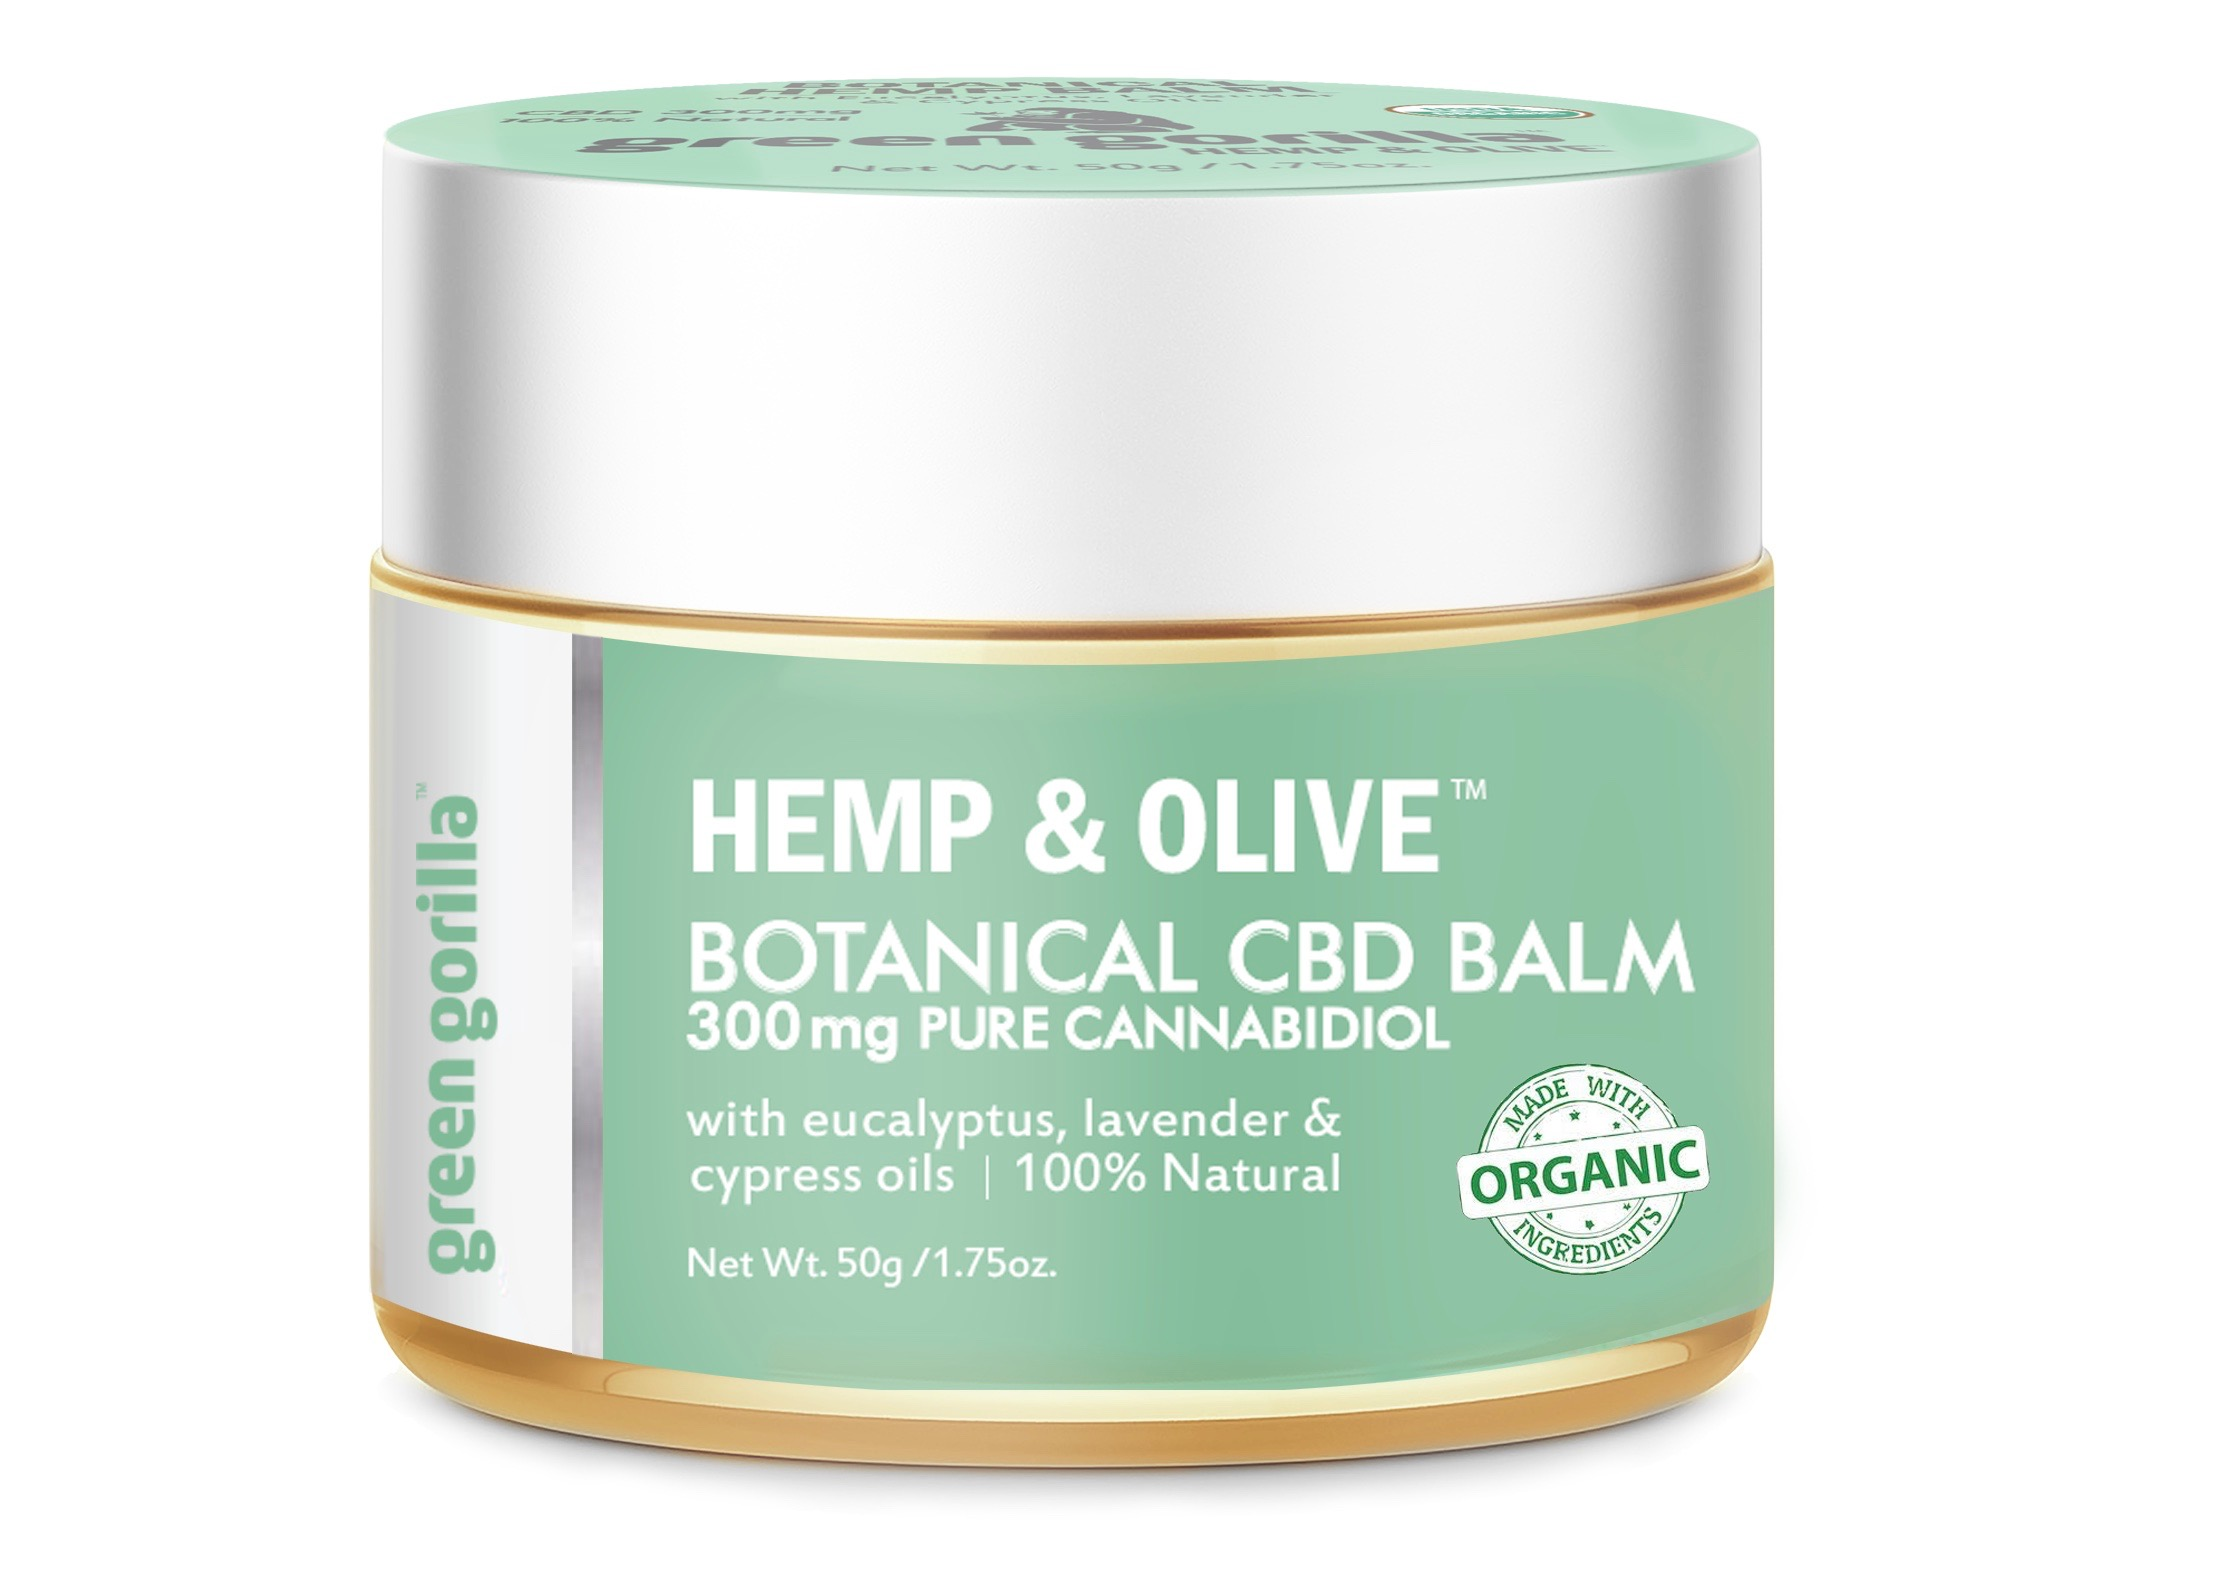 Green Gorilla Launches Botanical CBD Balm for Treatment of Muscle ...